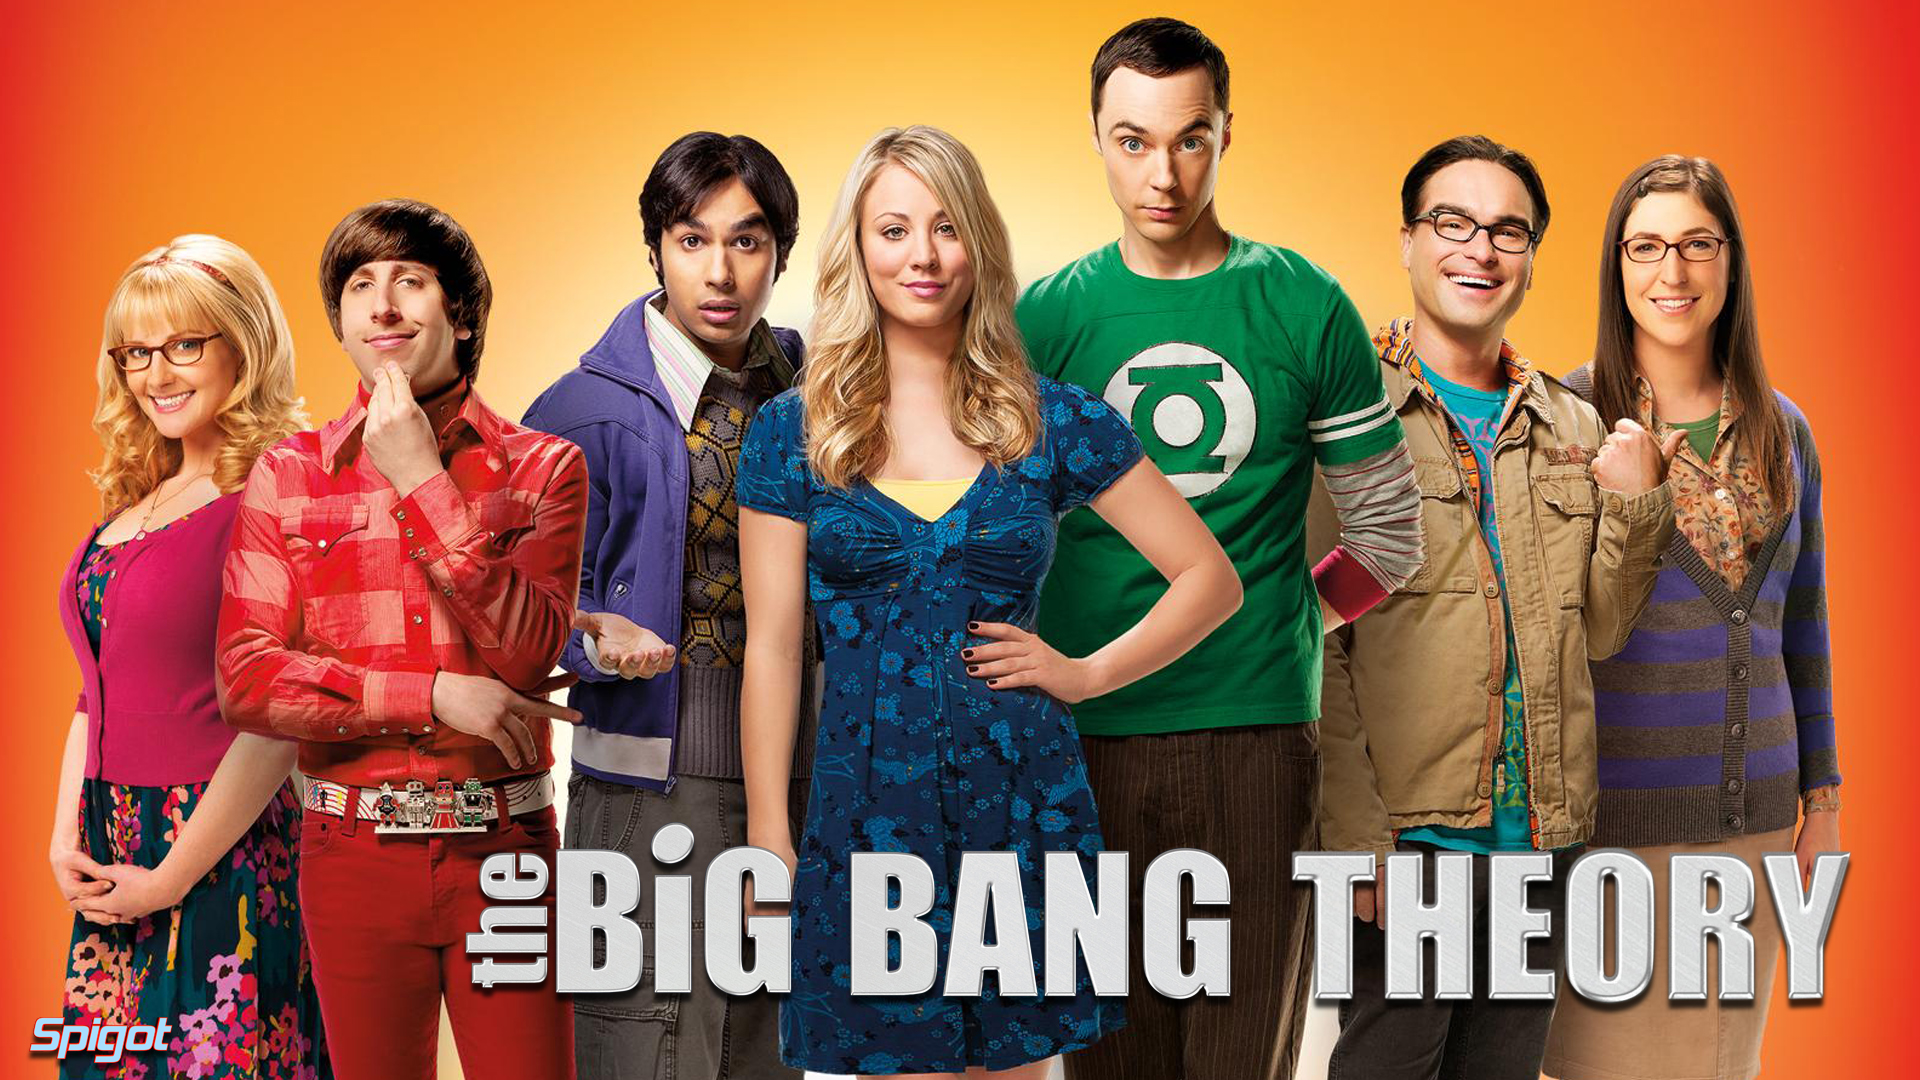 Big-Bang-Theory-Pays-Tribute-To-LeonardNimoy-TheBigBangTheory-TBBT-wallpaper-wp38099